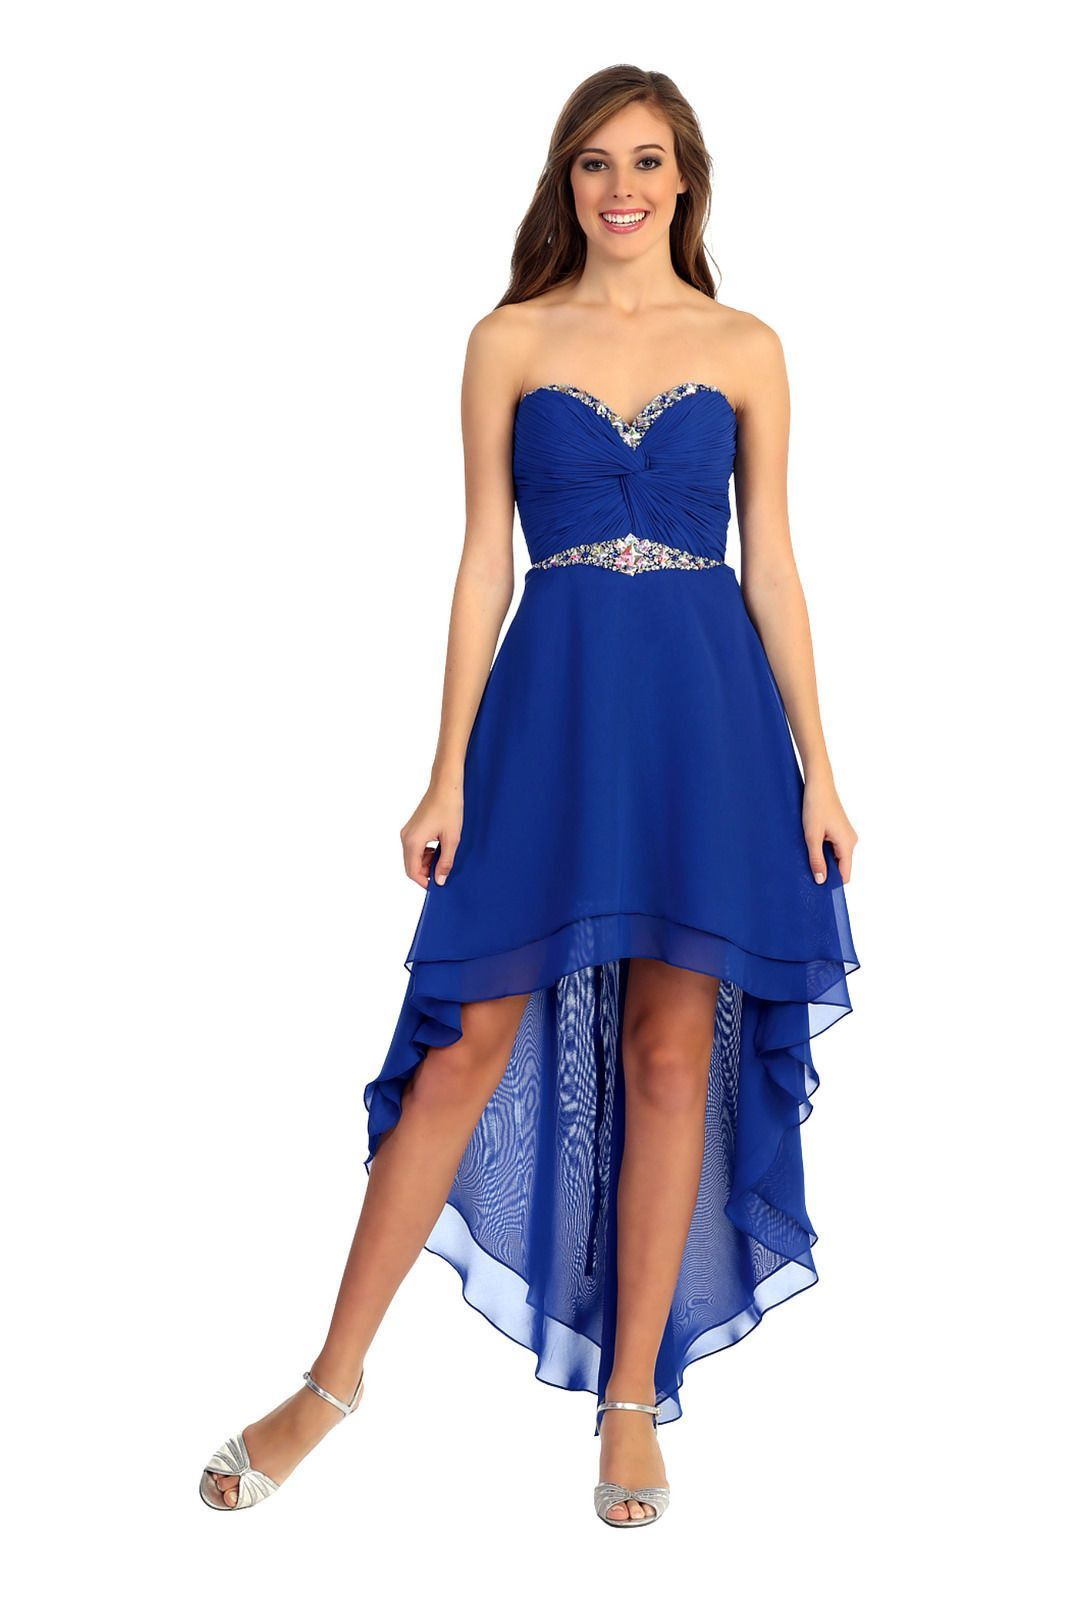 This prom dress is similar to my year prom dress except mine isn